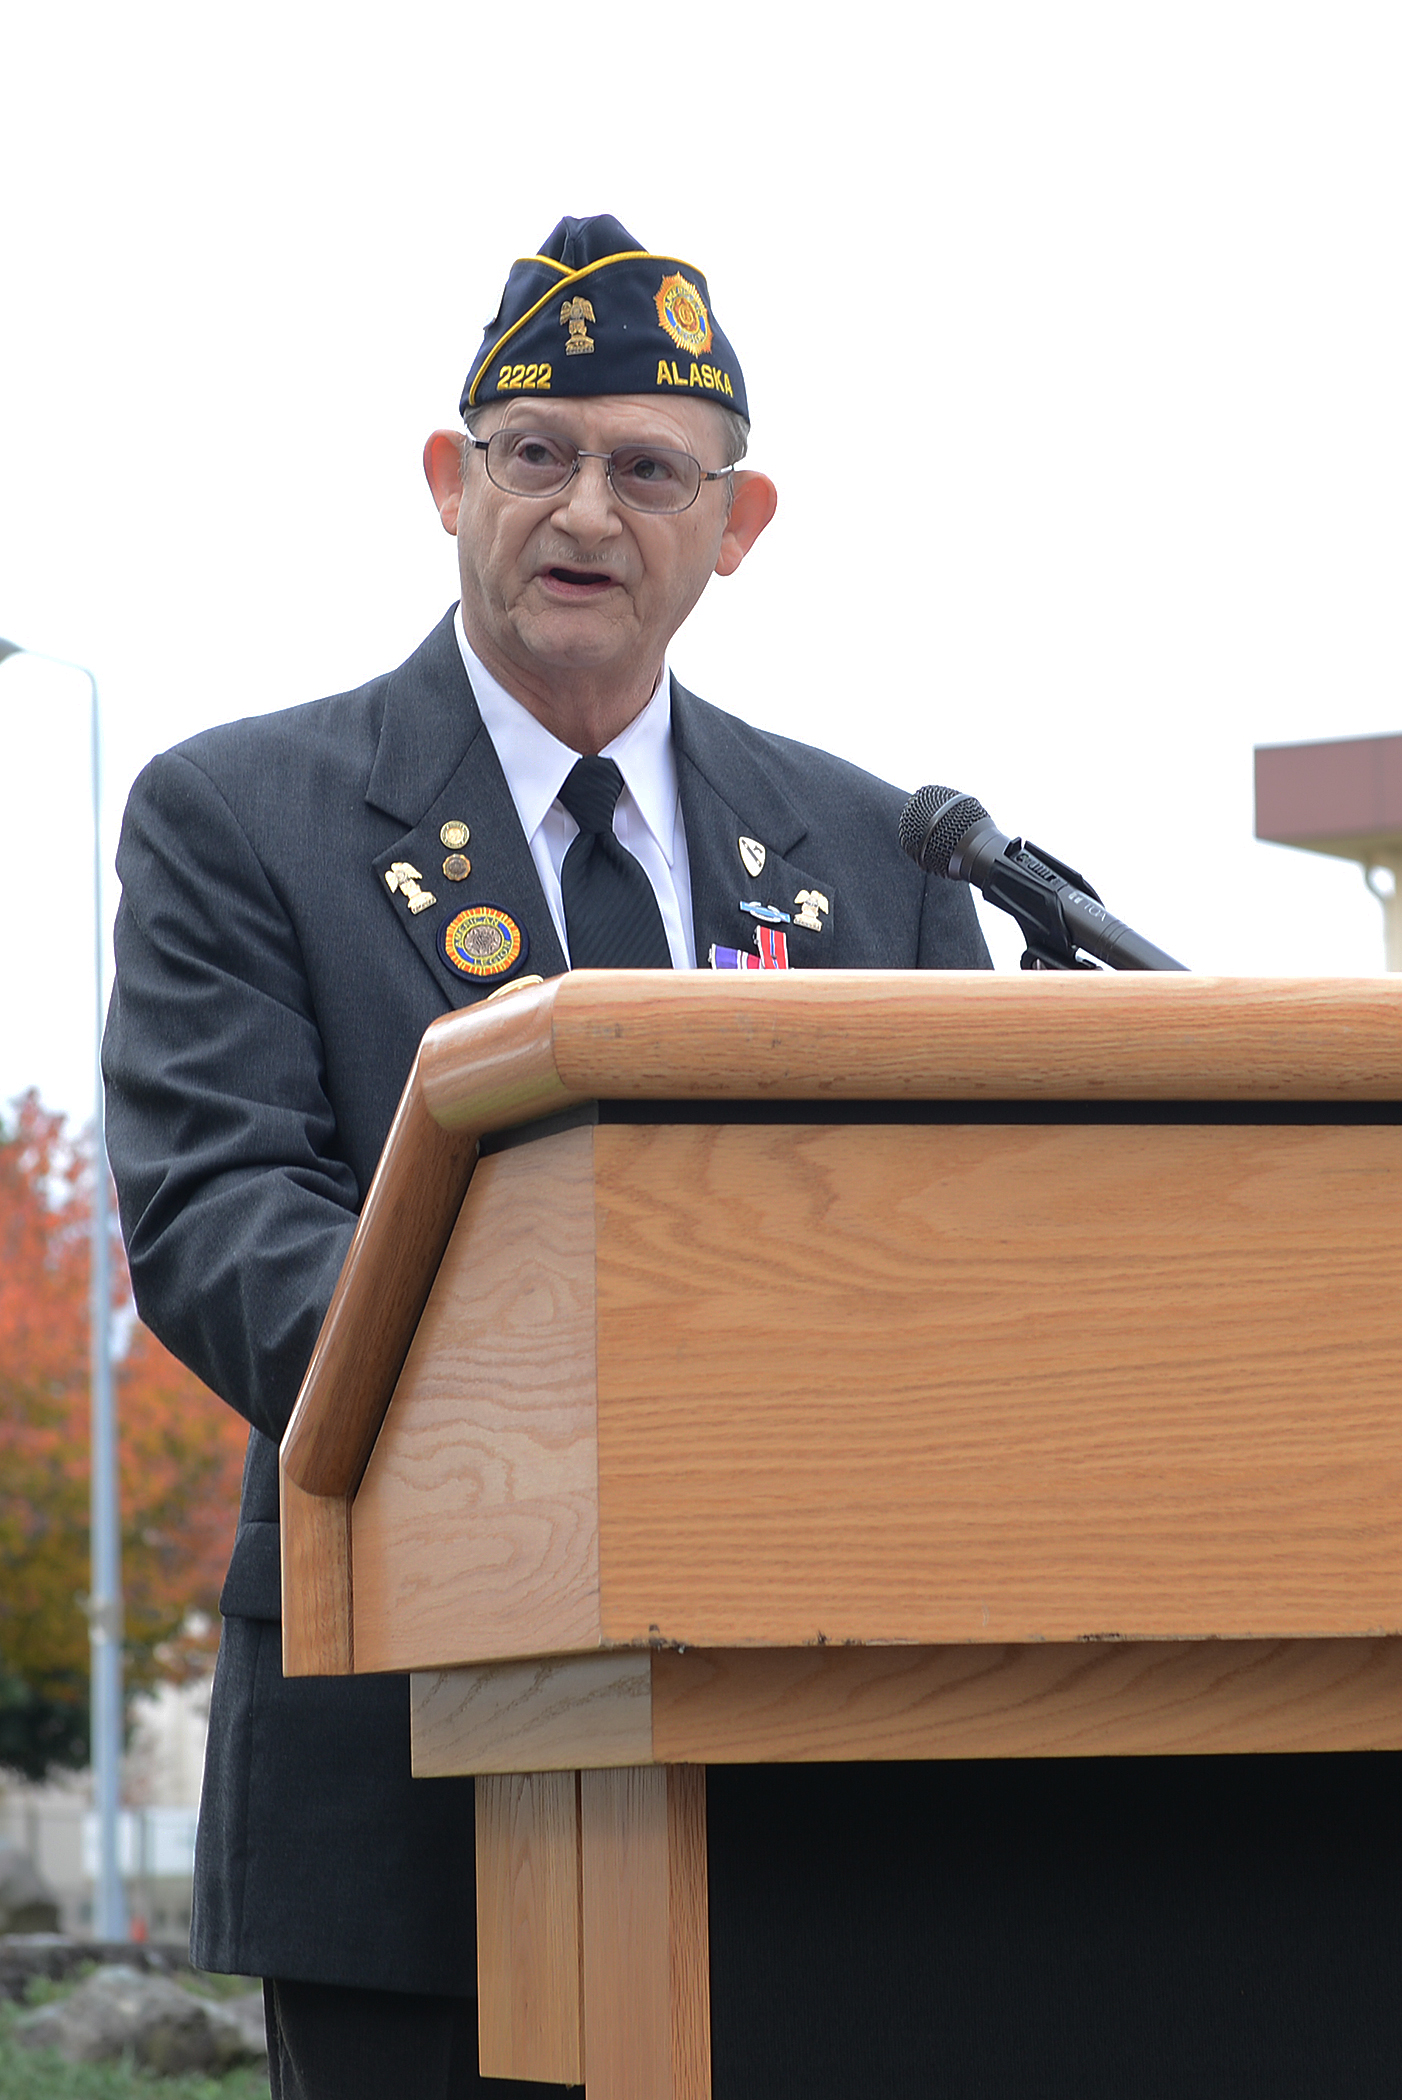 John Pierce, American Legion commander, presides over a Veterans Day ceremony at Yokota Air Base, Japan, Nov. 11, 2015. The American Legion is the nation's largest wartime veterans service organization. (U.S. Air Force photo by Senior Airman David C. Danford/Released)